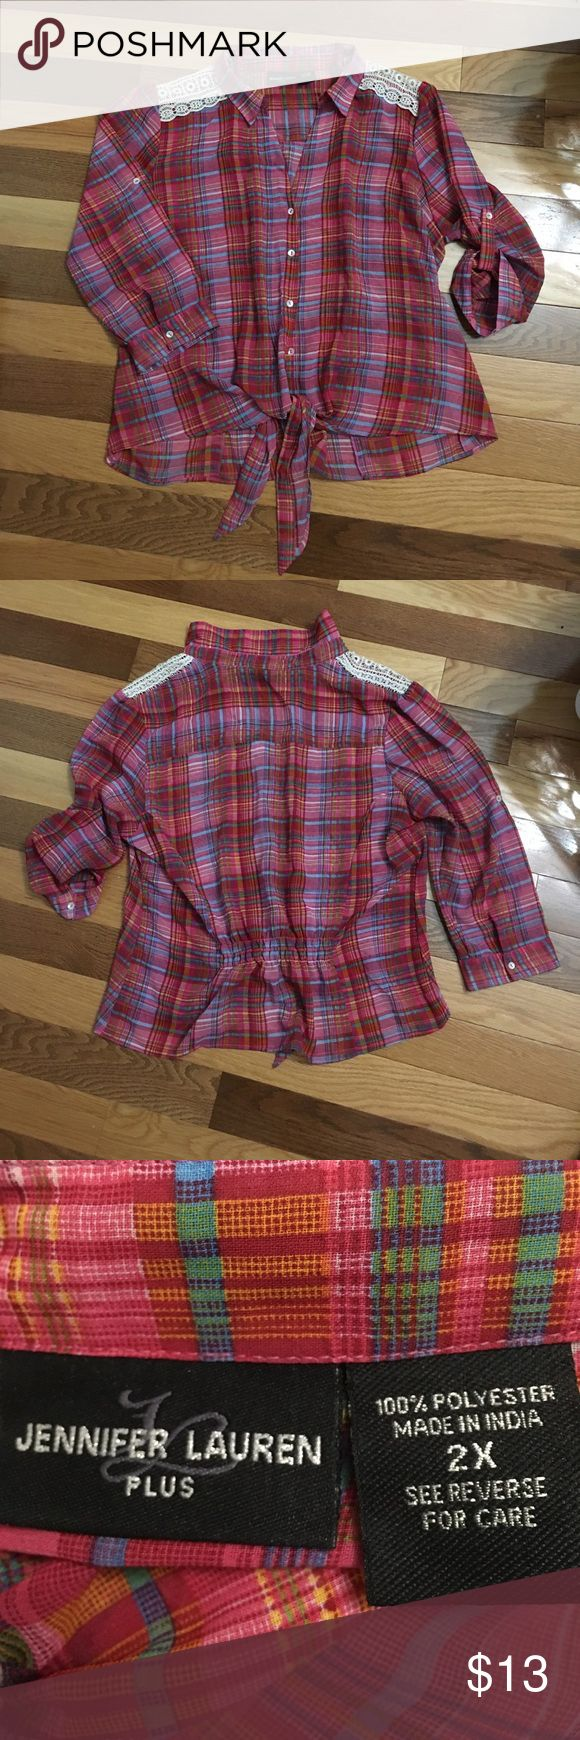 "Sheer western crop TOP Sz 2X Armpit to armpit is 25."" Shoulder to hem 23."" Front buttons and tie. Back is longer Abd gathers at waist. Shoulder has decorative crotchet. Three quarters sleeves roll up and button. Jennifer Lauren Tops Crop Tops"